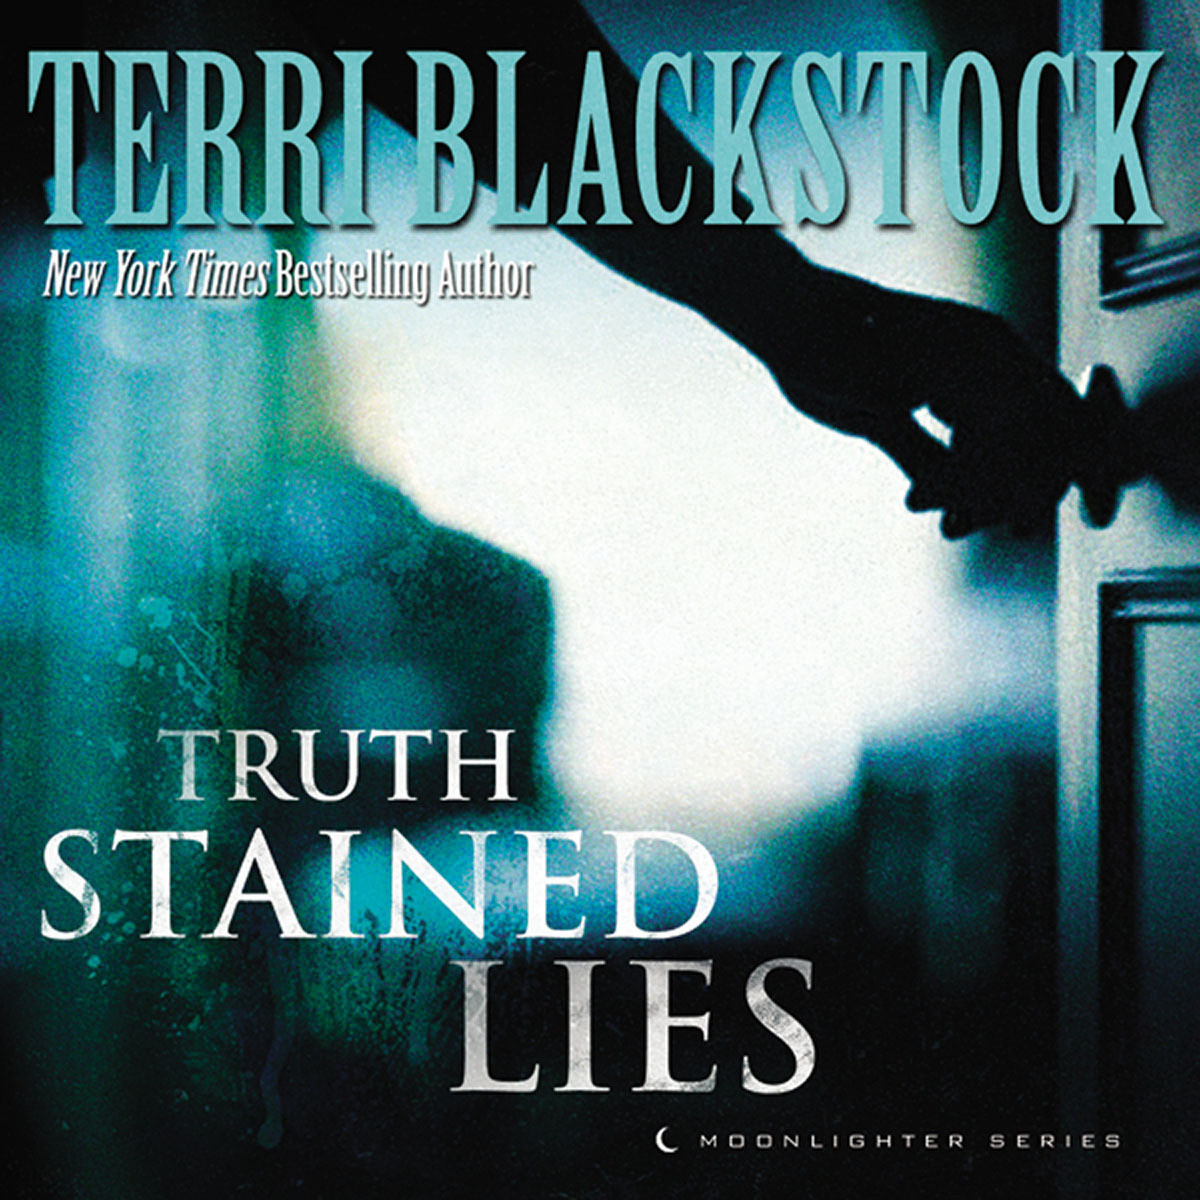 Printable Truth Stained Lies Audiobook Cover Art